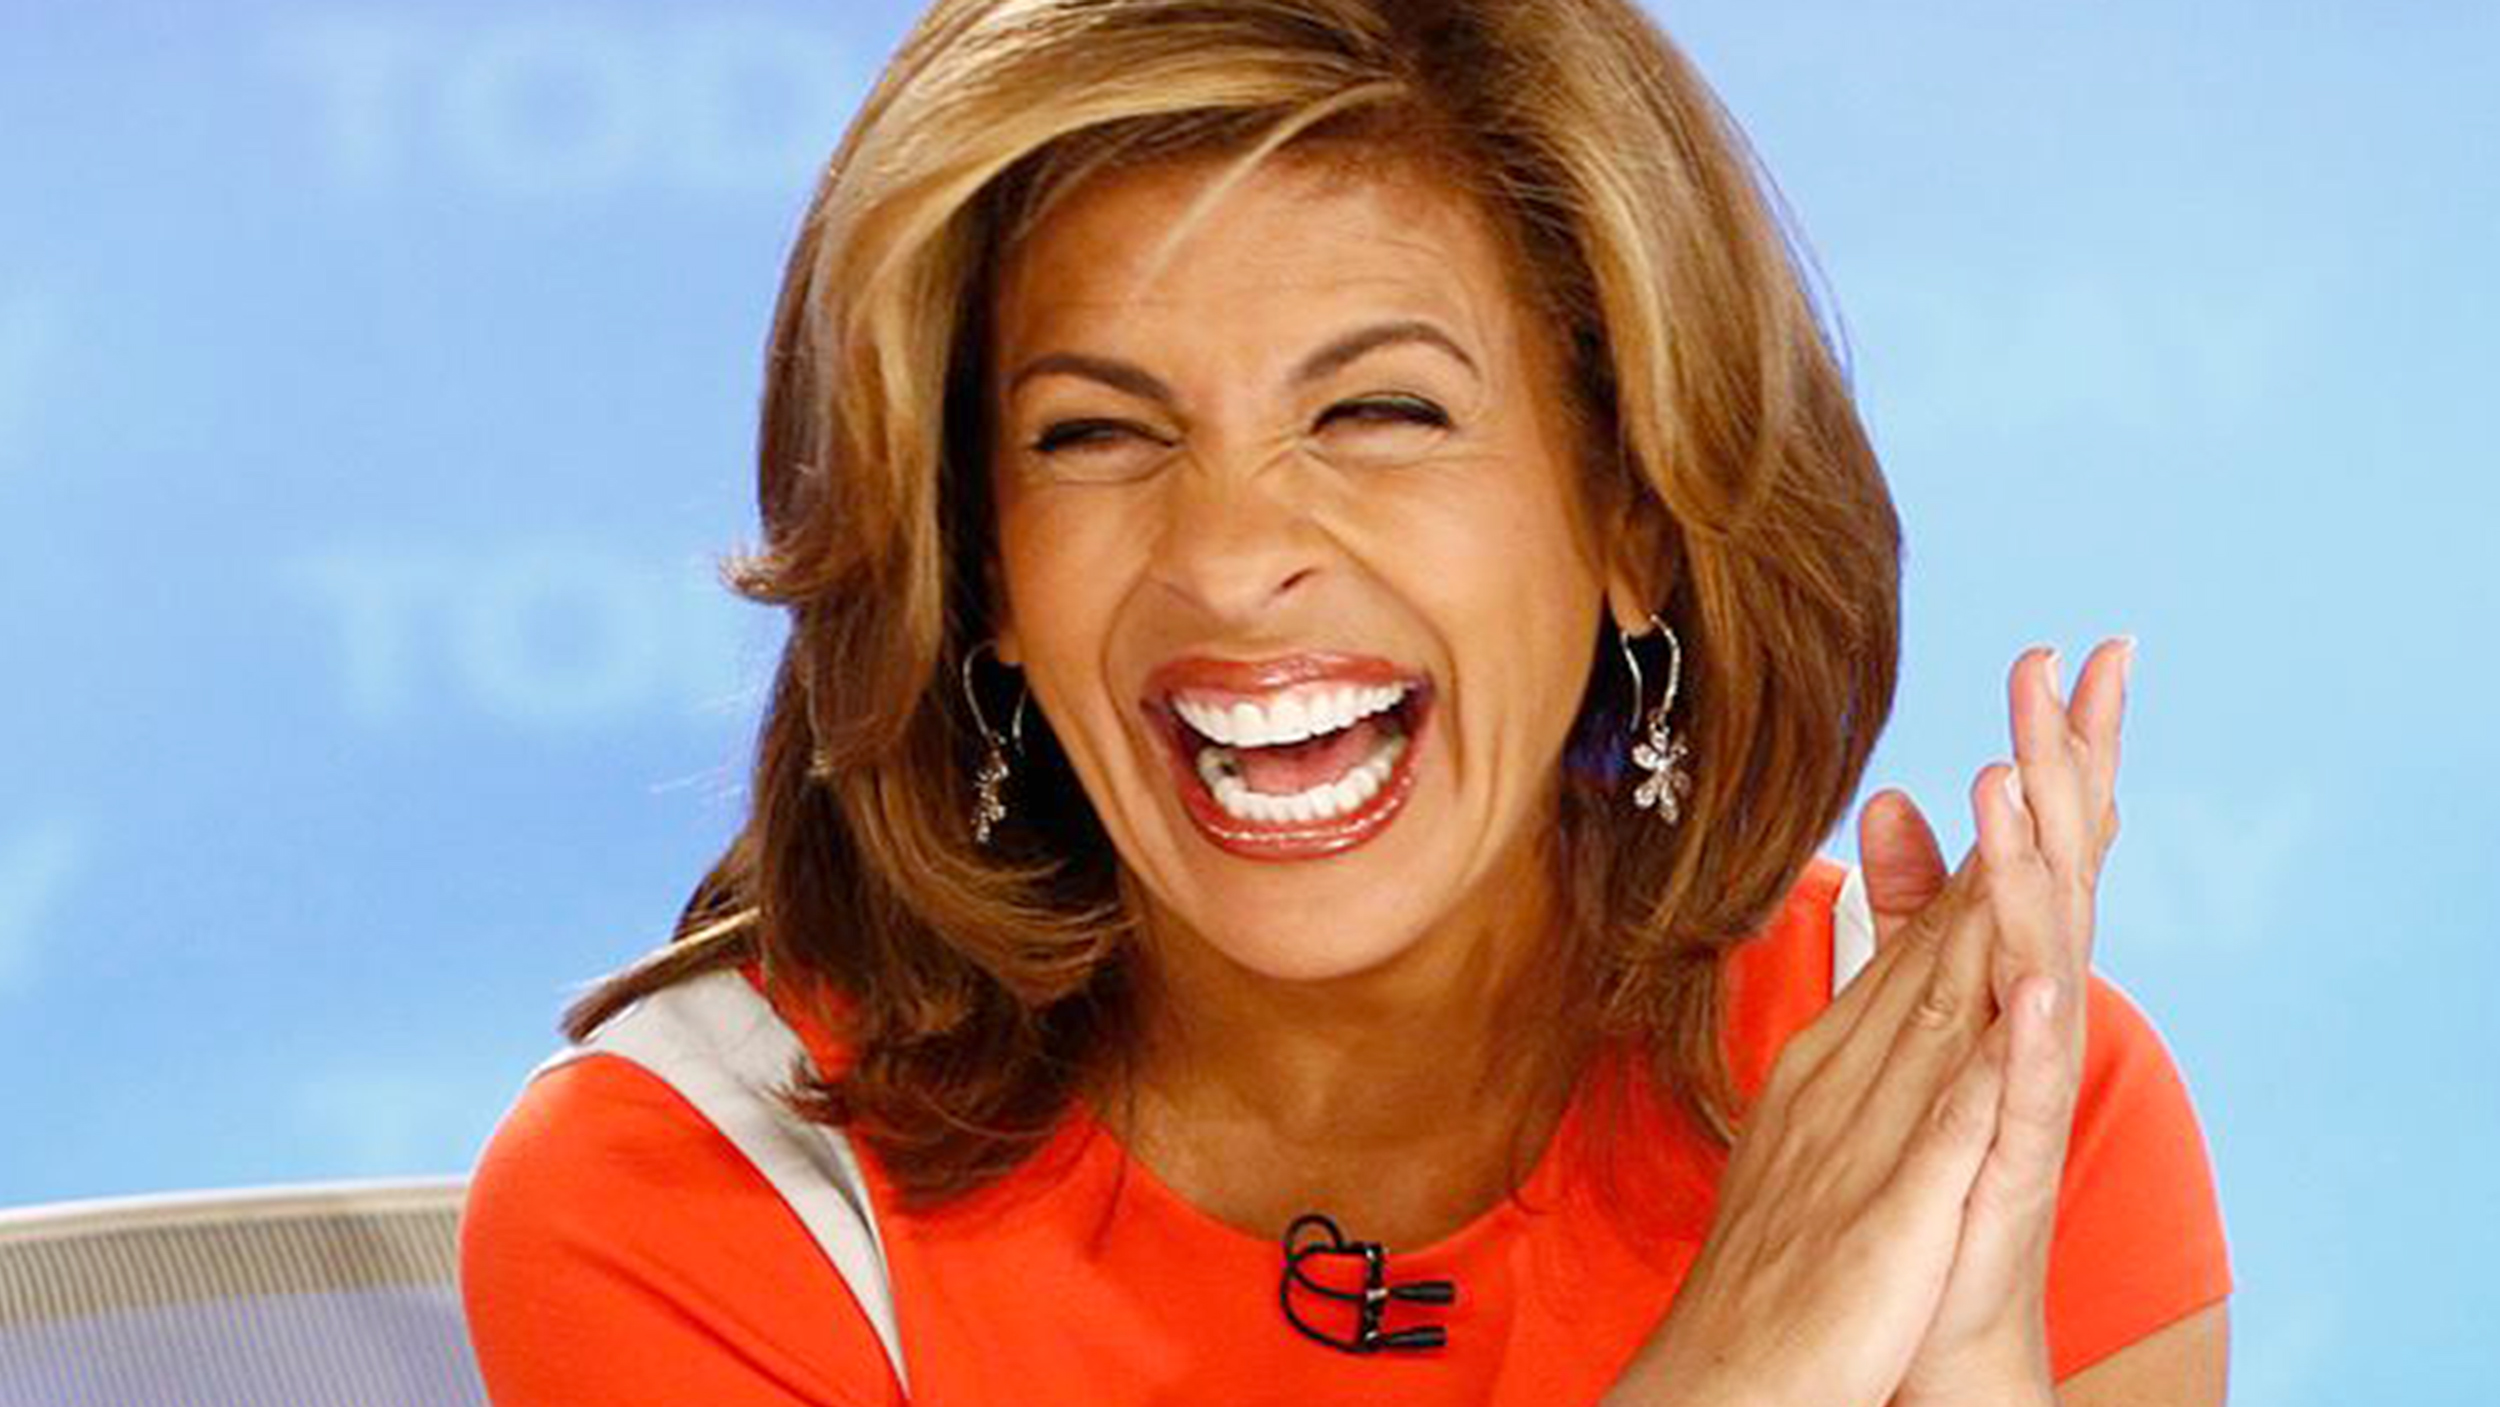 Hoda Kotb S 5 Unexpected Tips For Happiness Today Com